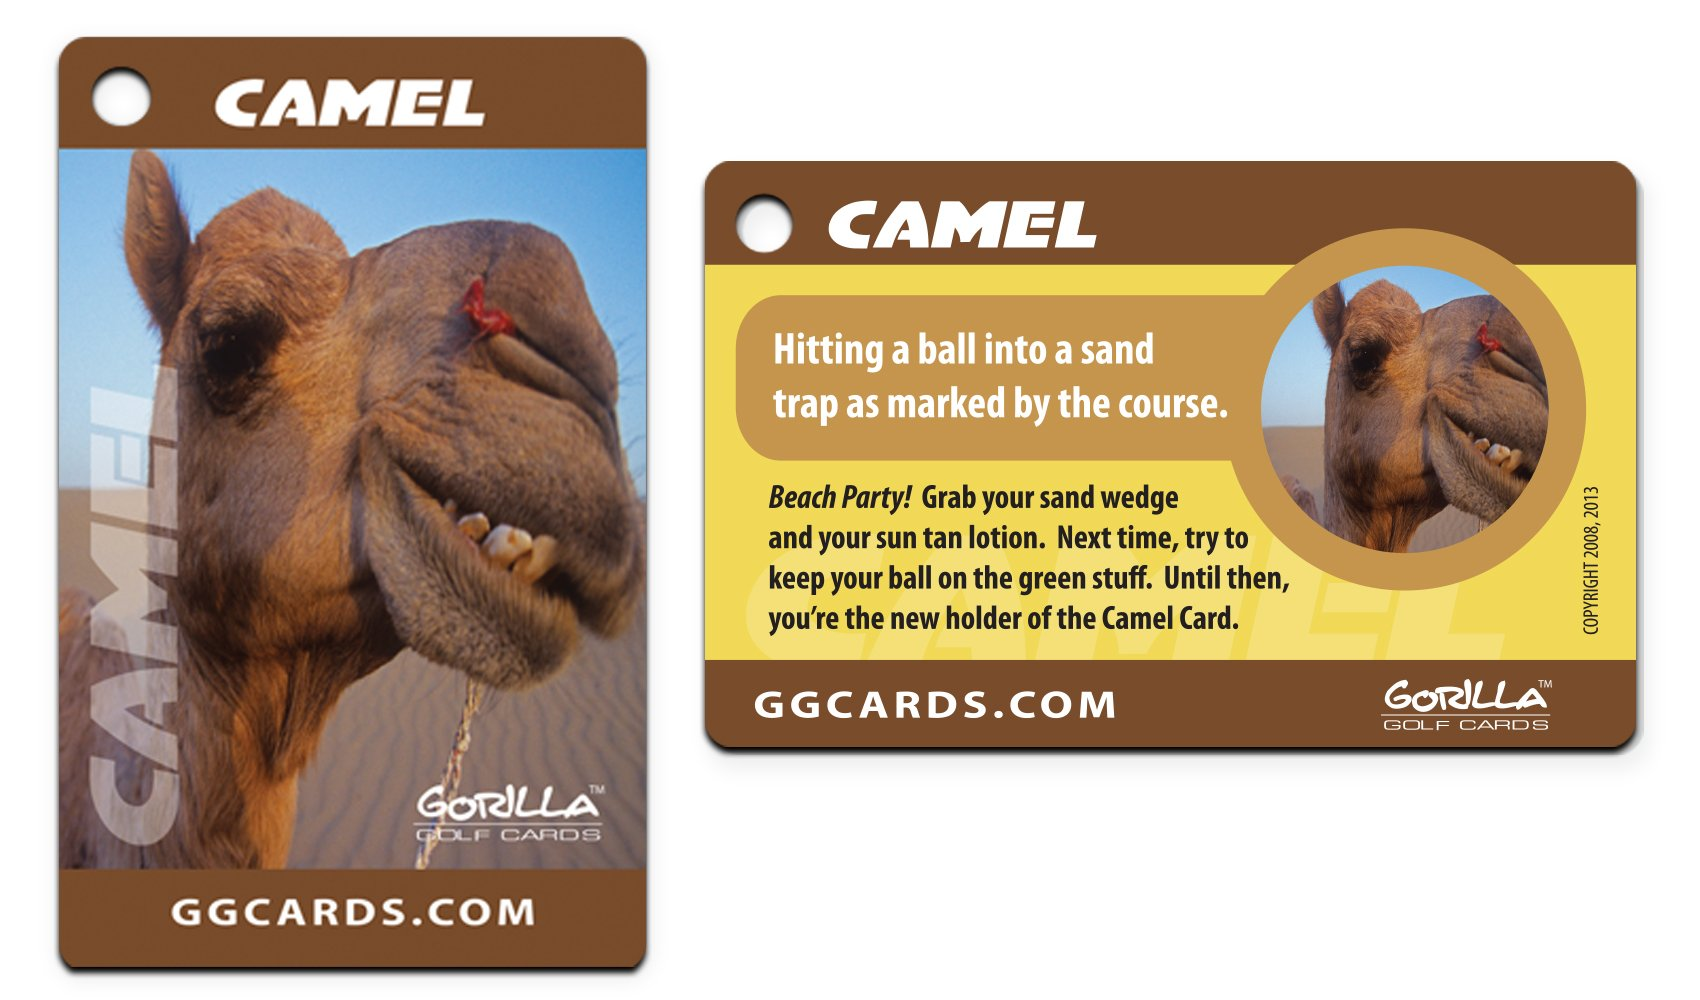 Gorilla Golf Cards : The On-Course Golf Betting Game by Gorilla Golf Cards (Image #3)